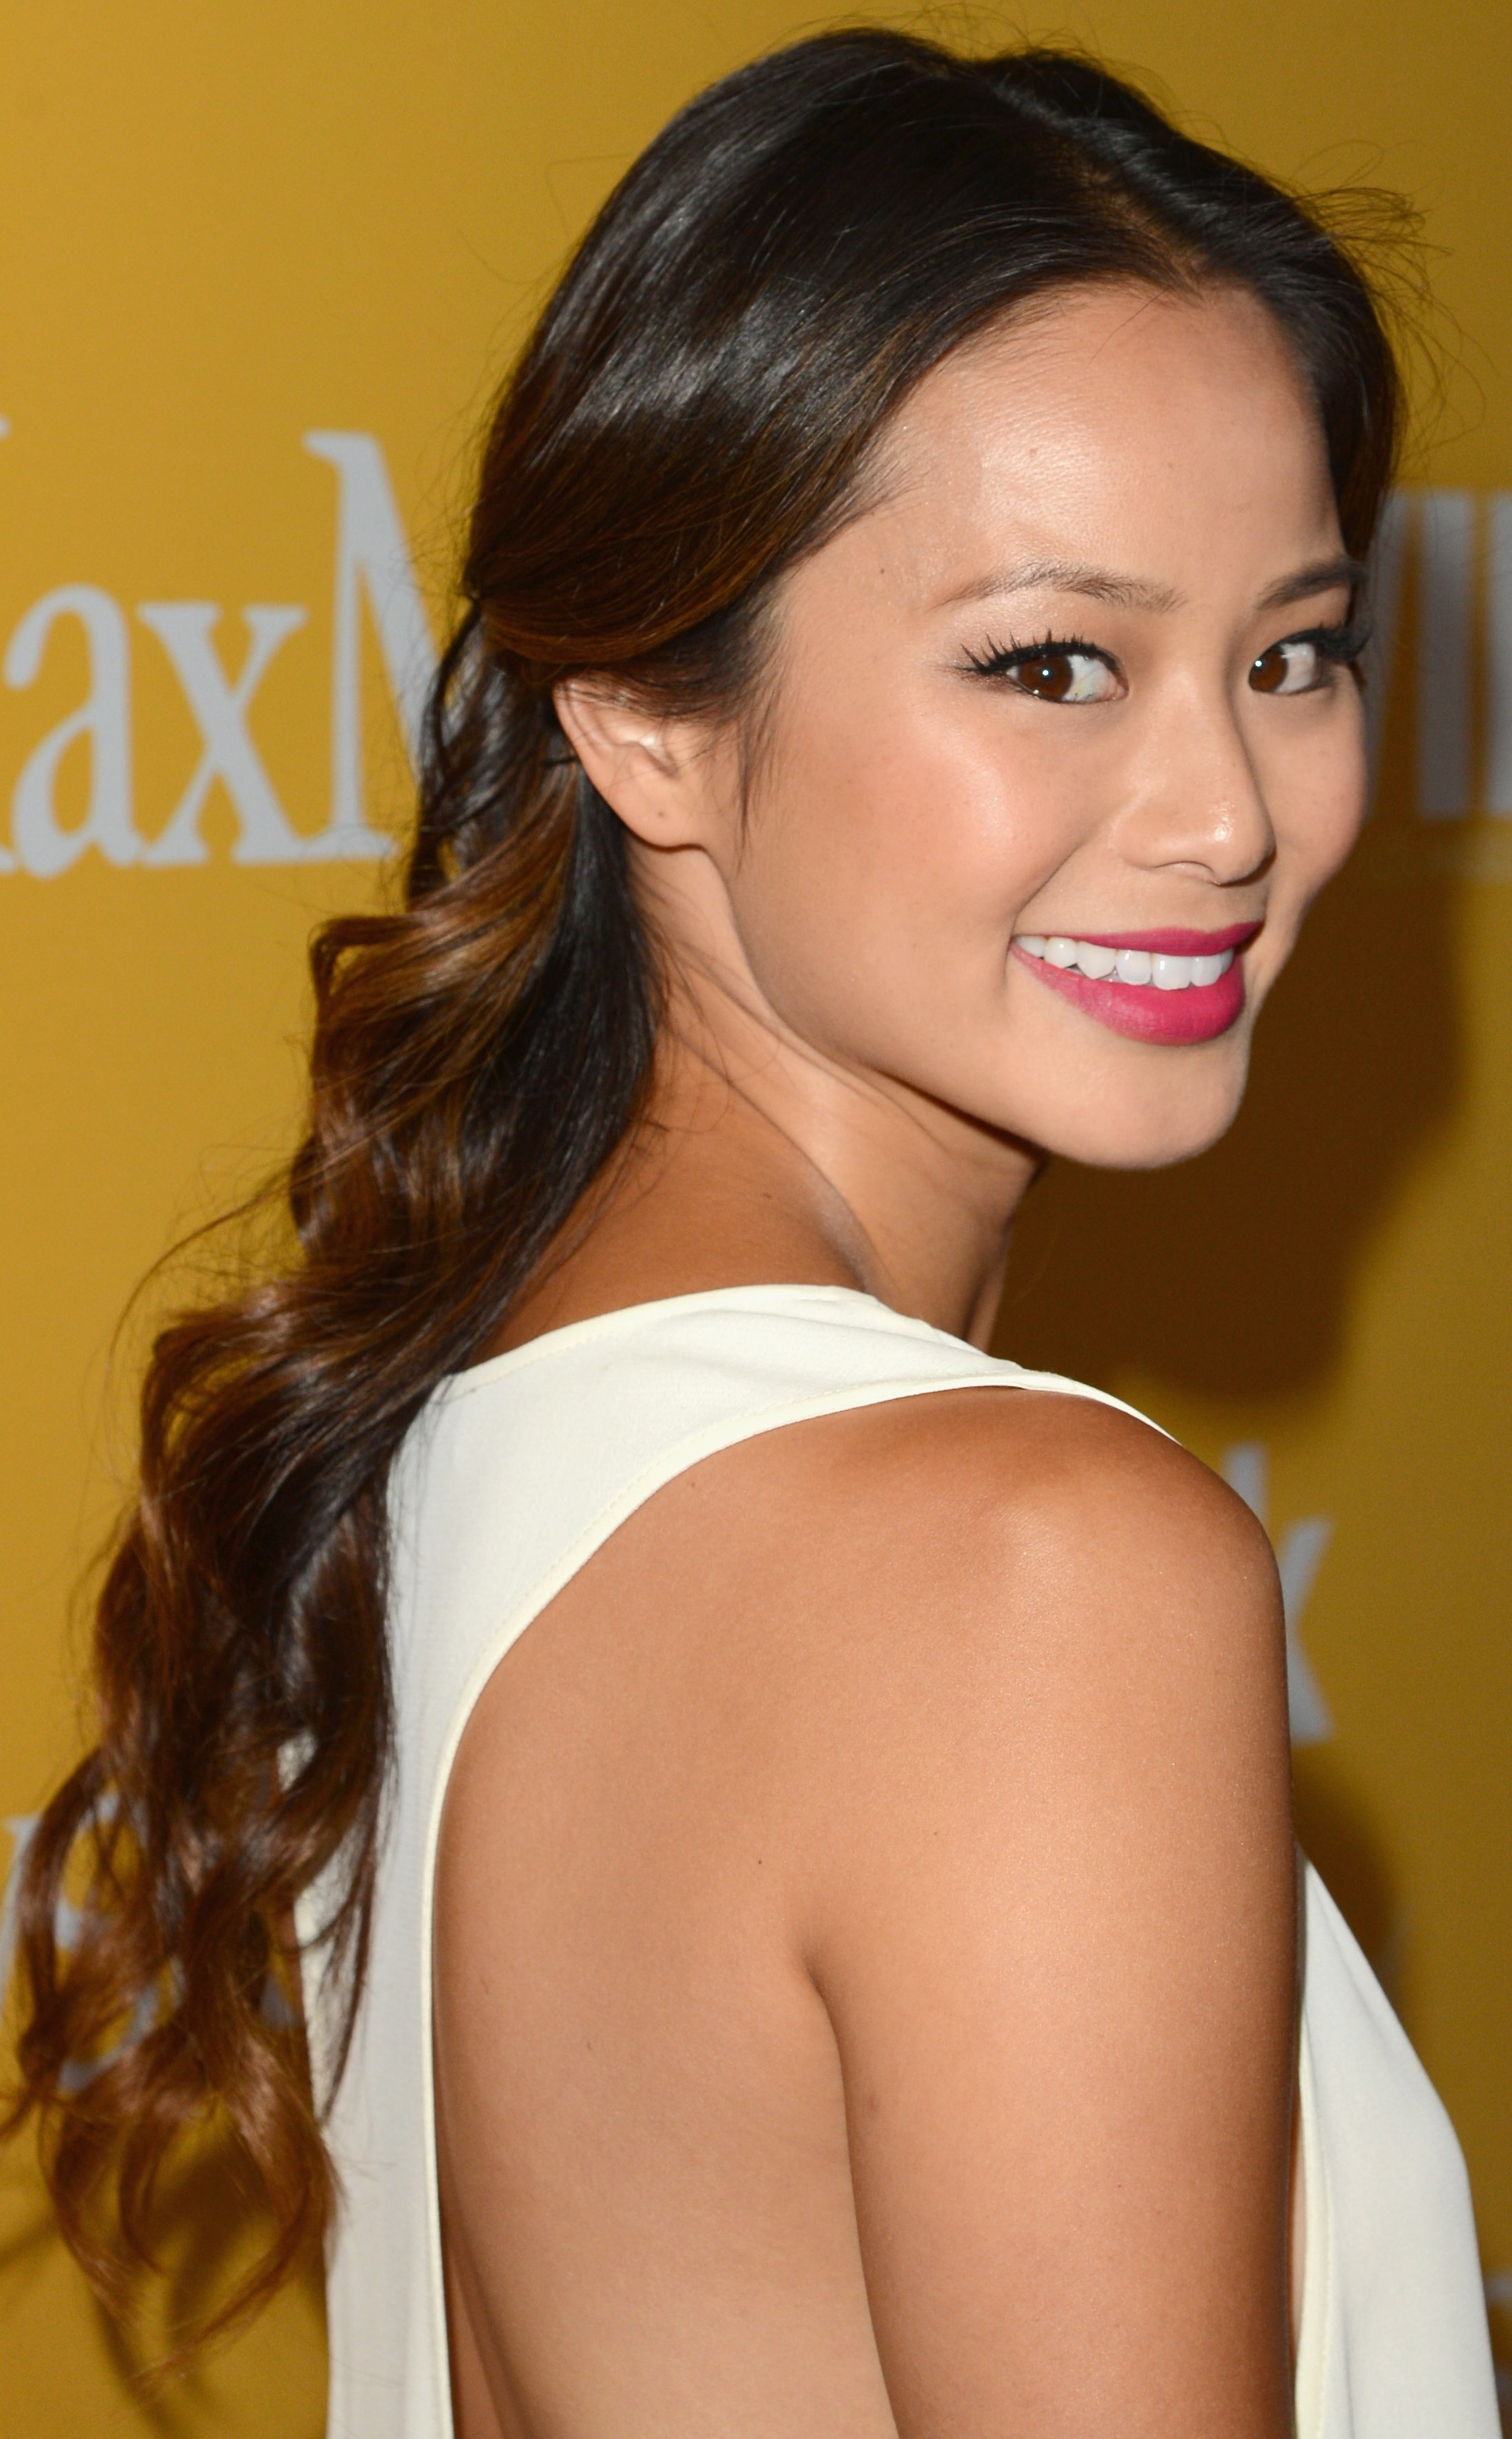 Jamie-Chung-Cute-Medium-CurlsJamie-Chungs-Glam-CurlsAsian-curly-hair-CurlyJamie-Chungs-Curly-Updo-Jamie-Chungs-long-02